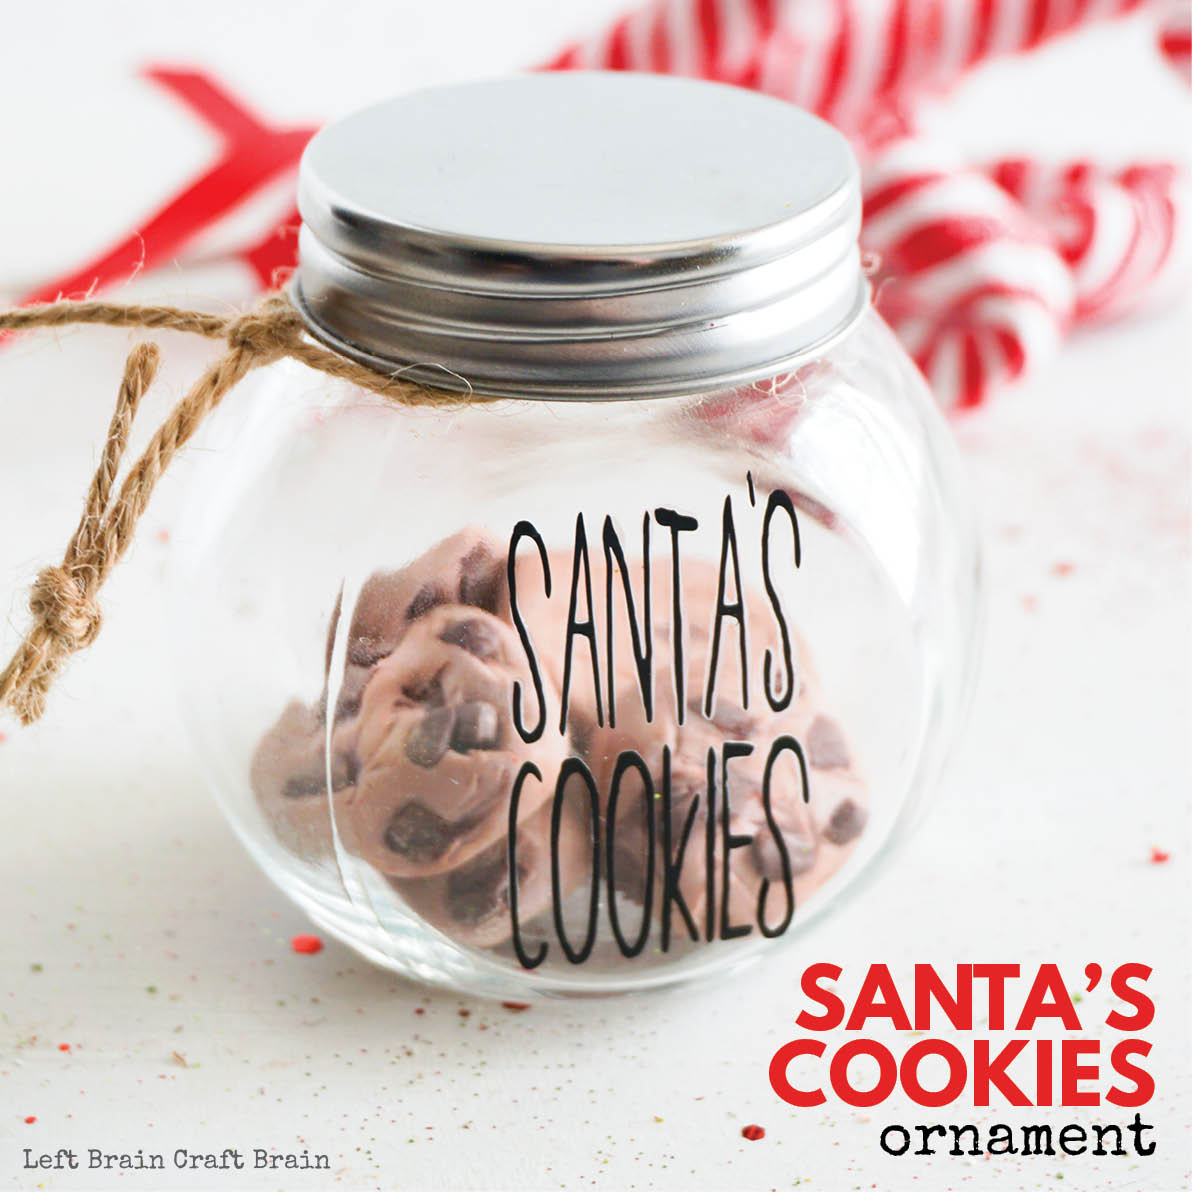 Make this adorable Santa's Cookies DIY Christmas Ornament for a fun gift for the kids or activity to do with the kids. It makes a great gift along with a batch of homemade cookies, too. What a sweet Christmas tradition!